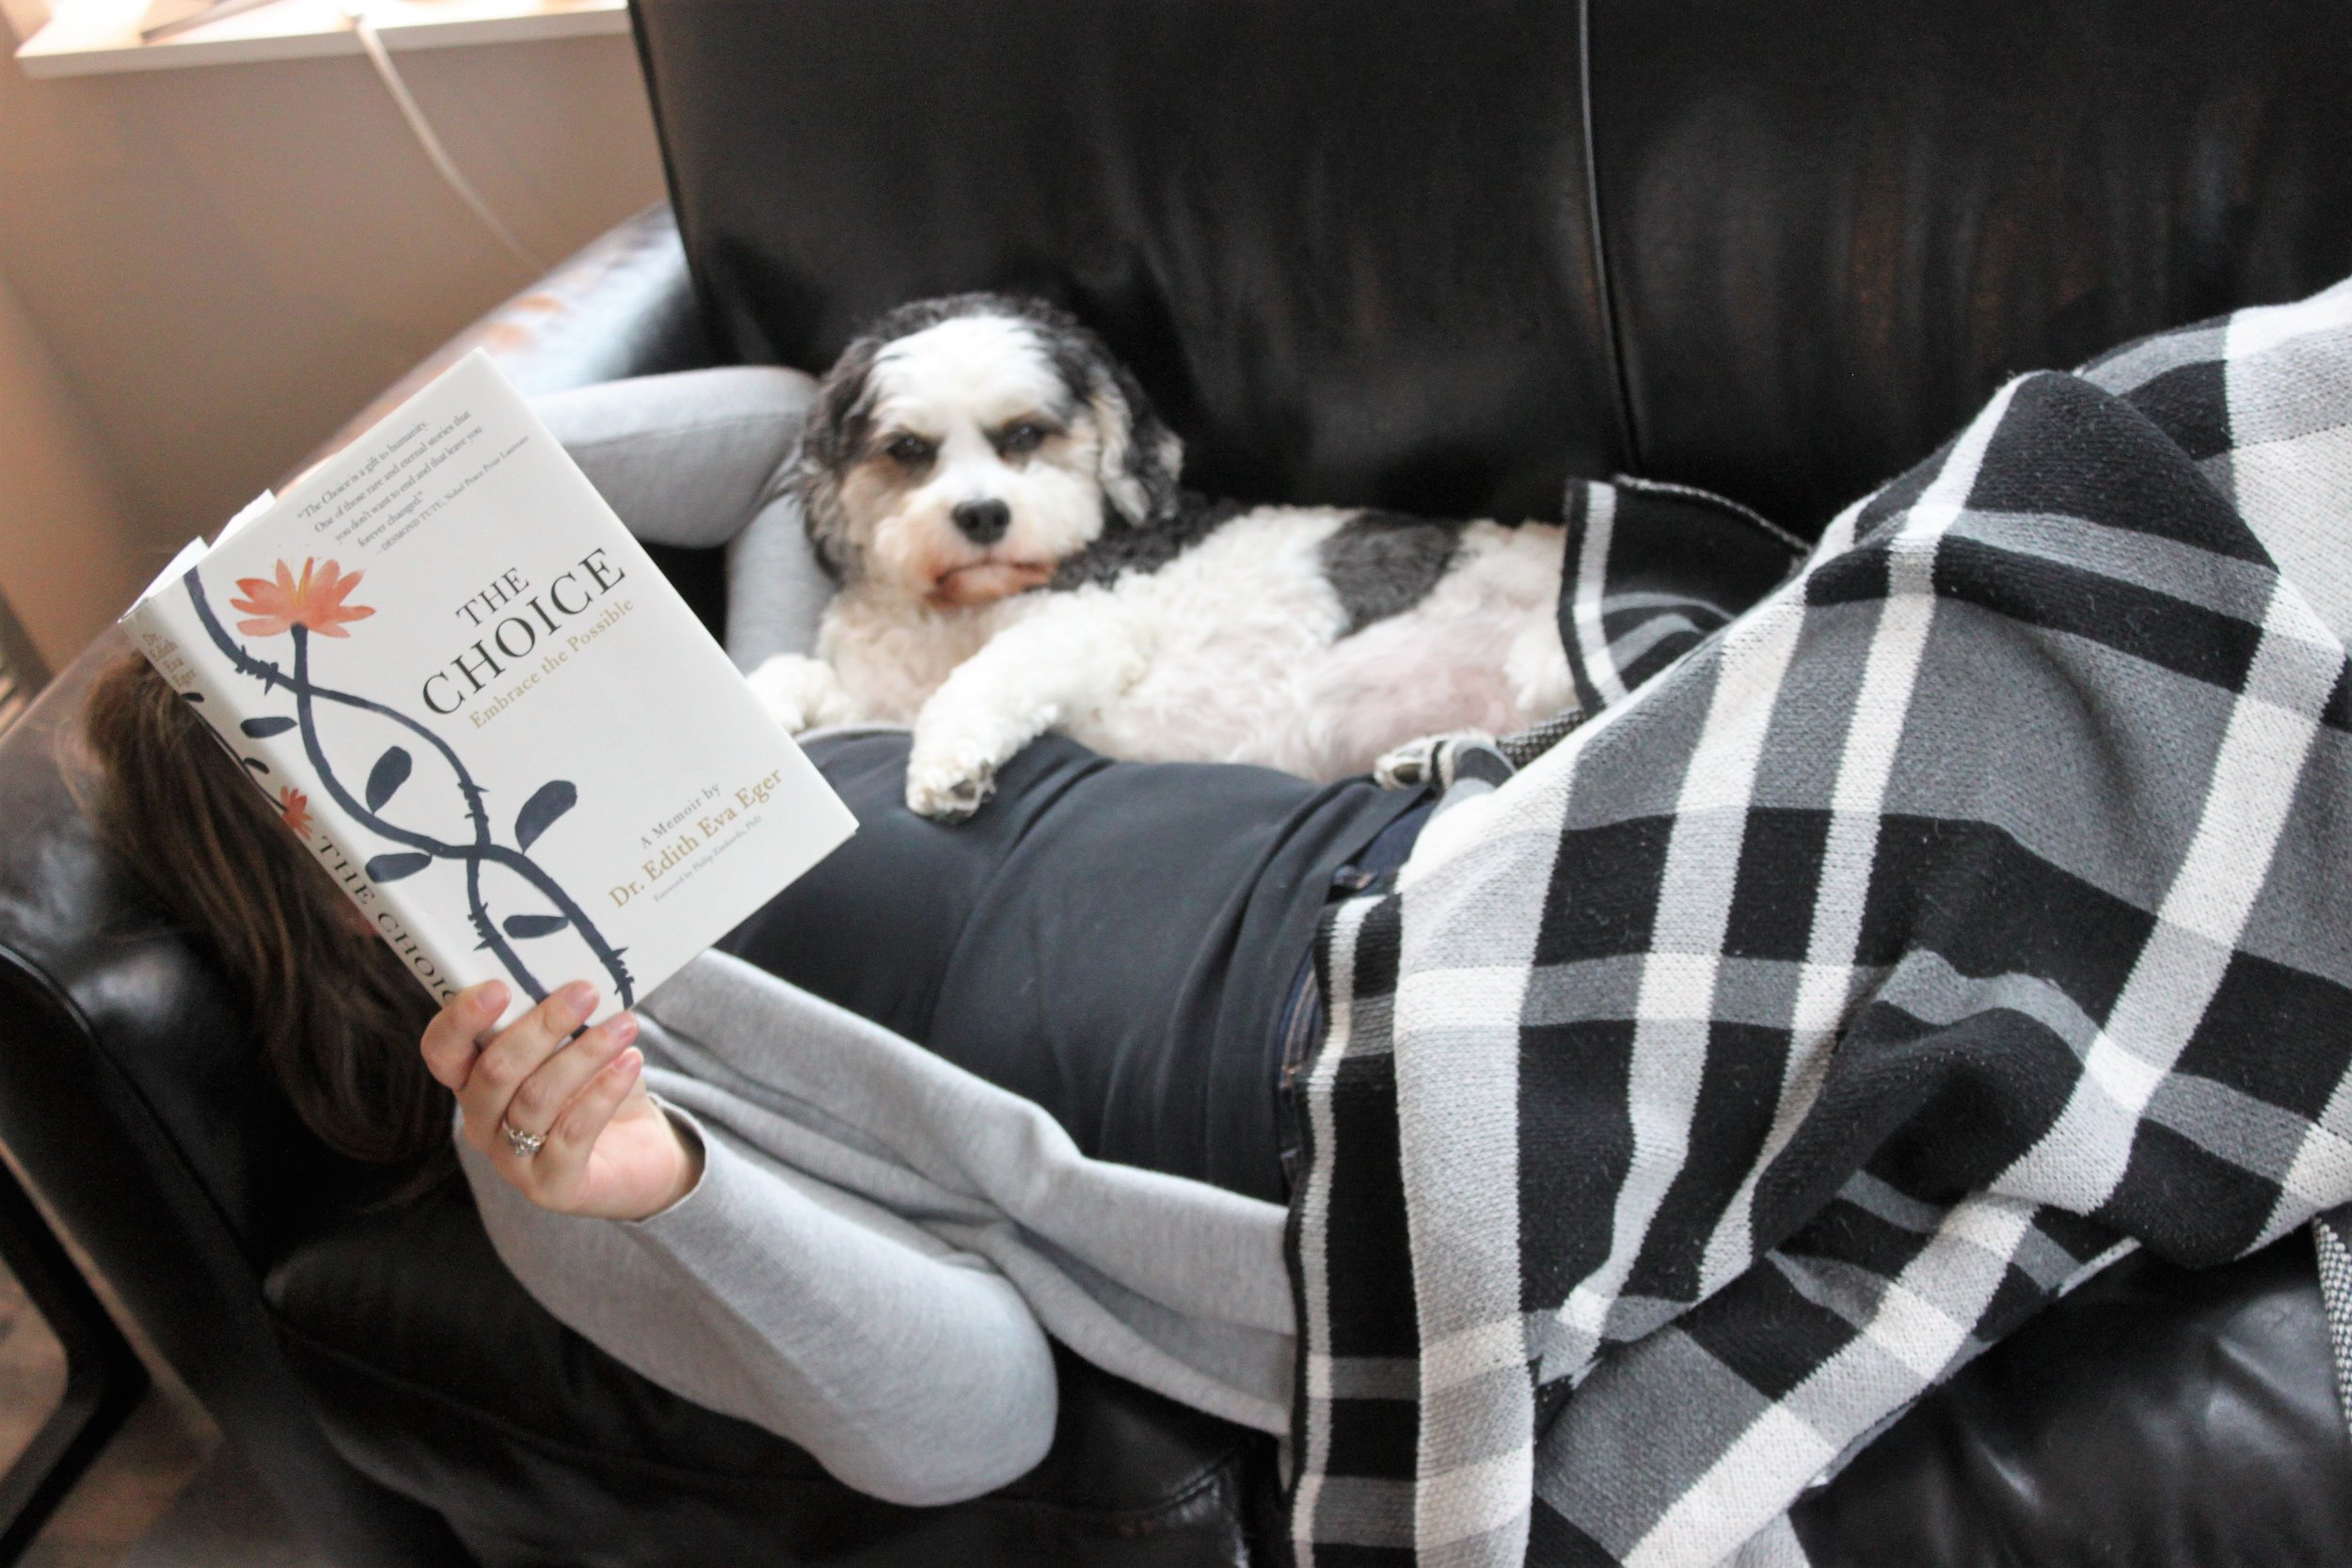 Reading The Choice by Dr. Edith Eva Eger at home in Chicago, IL